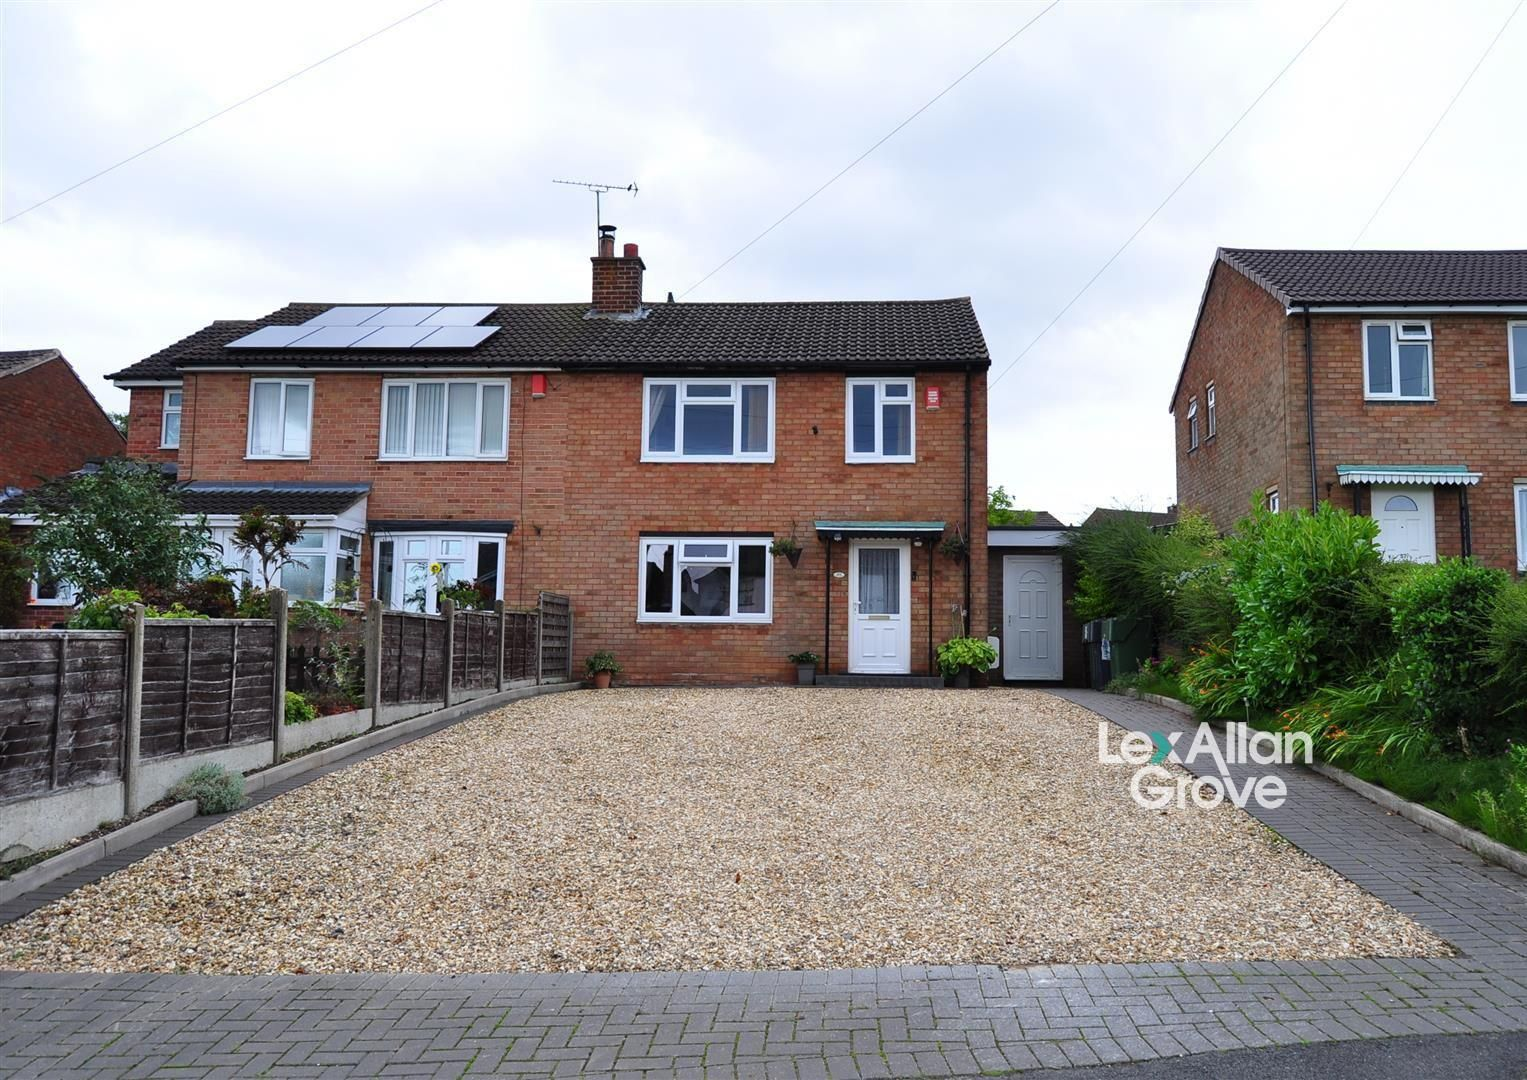 3 bed semi-detached for sale in Romsley, B62